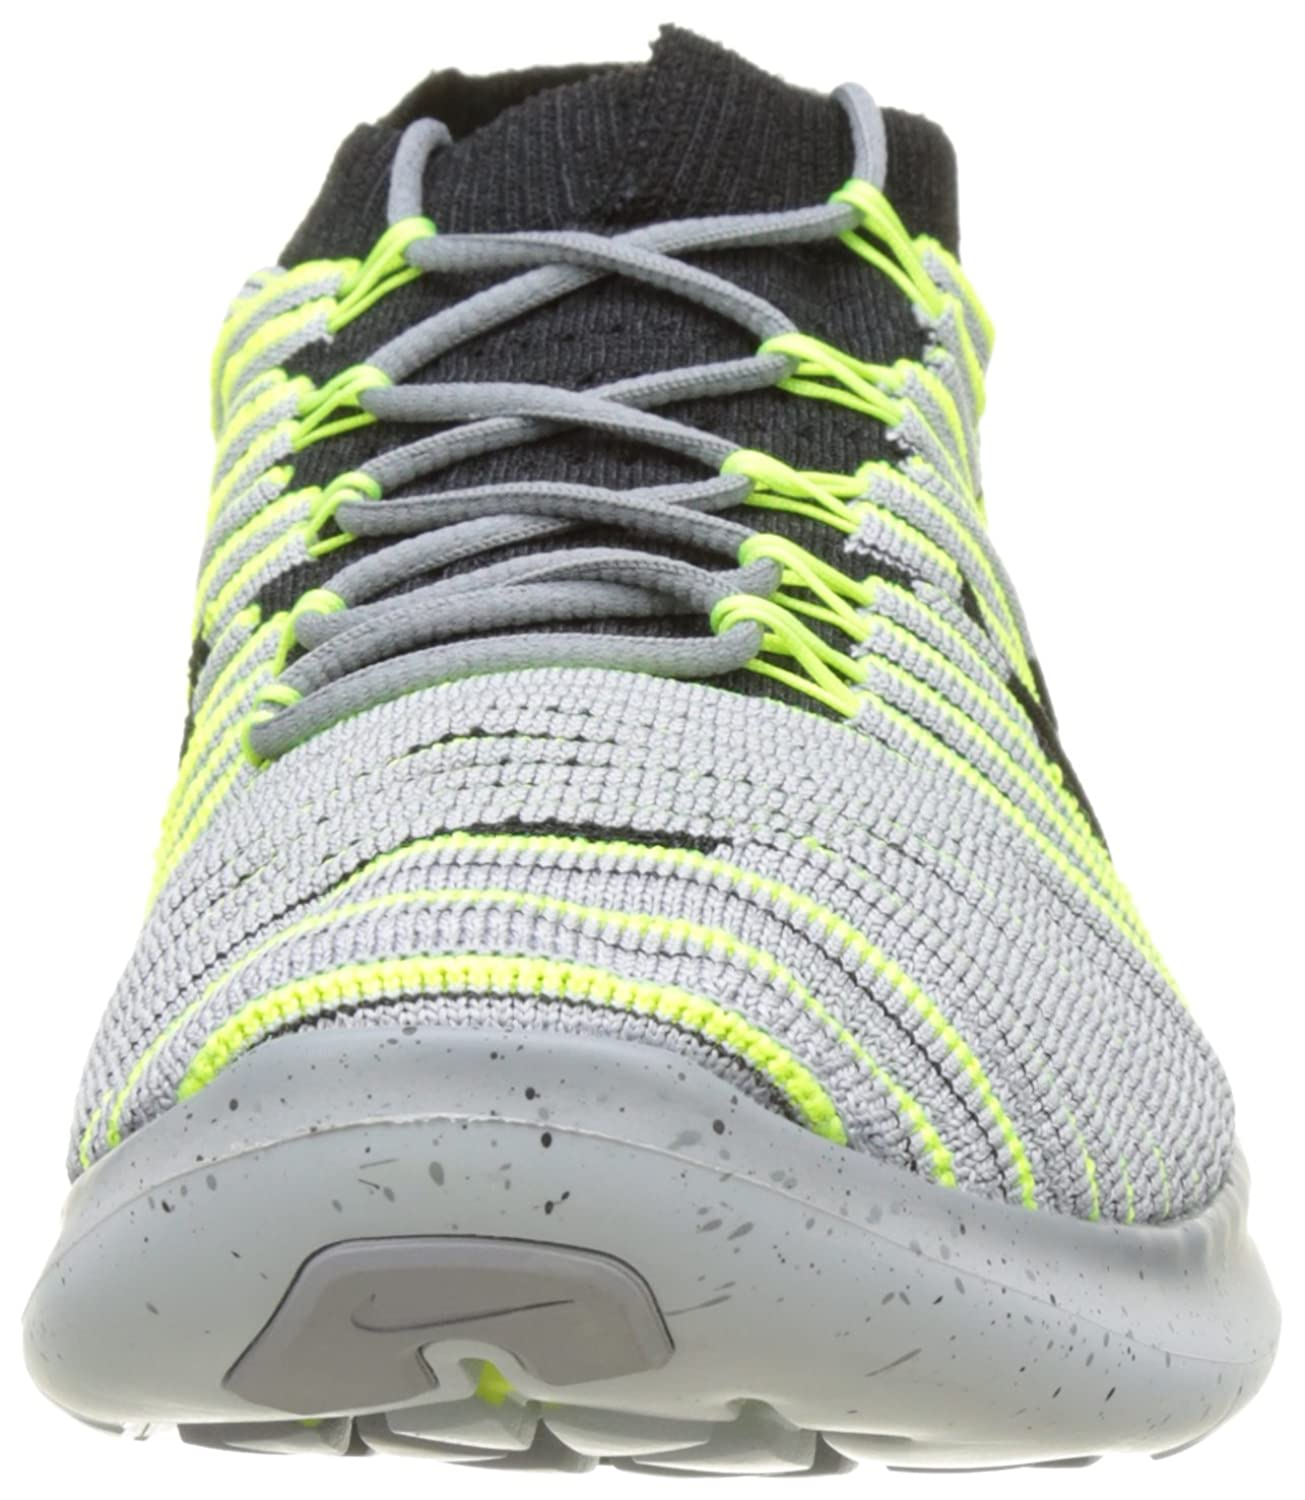 Nike Libera Rn Flyknit Movimento Amazon wU85S